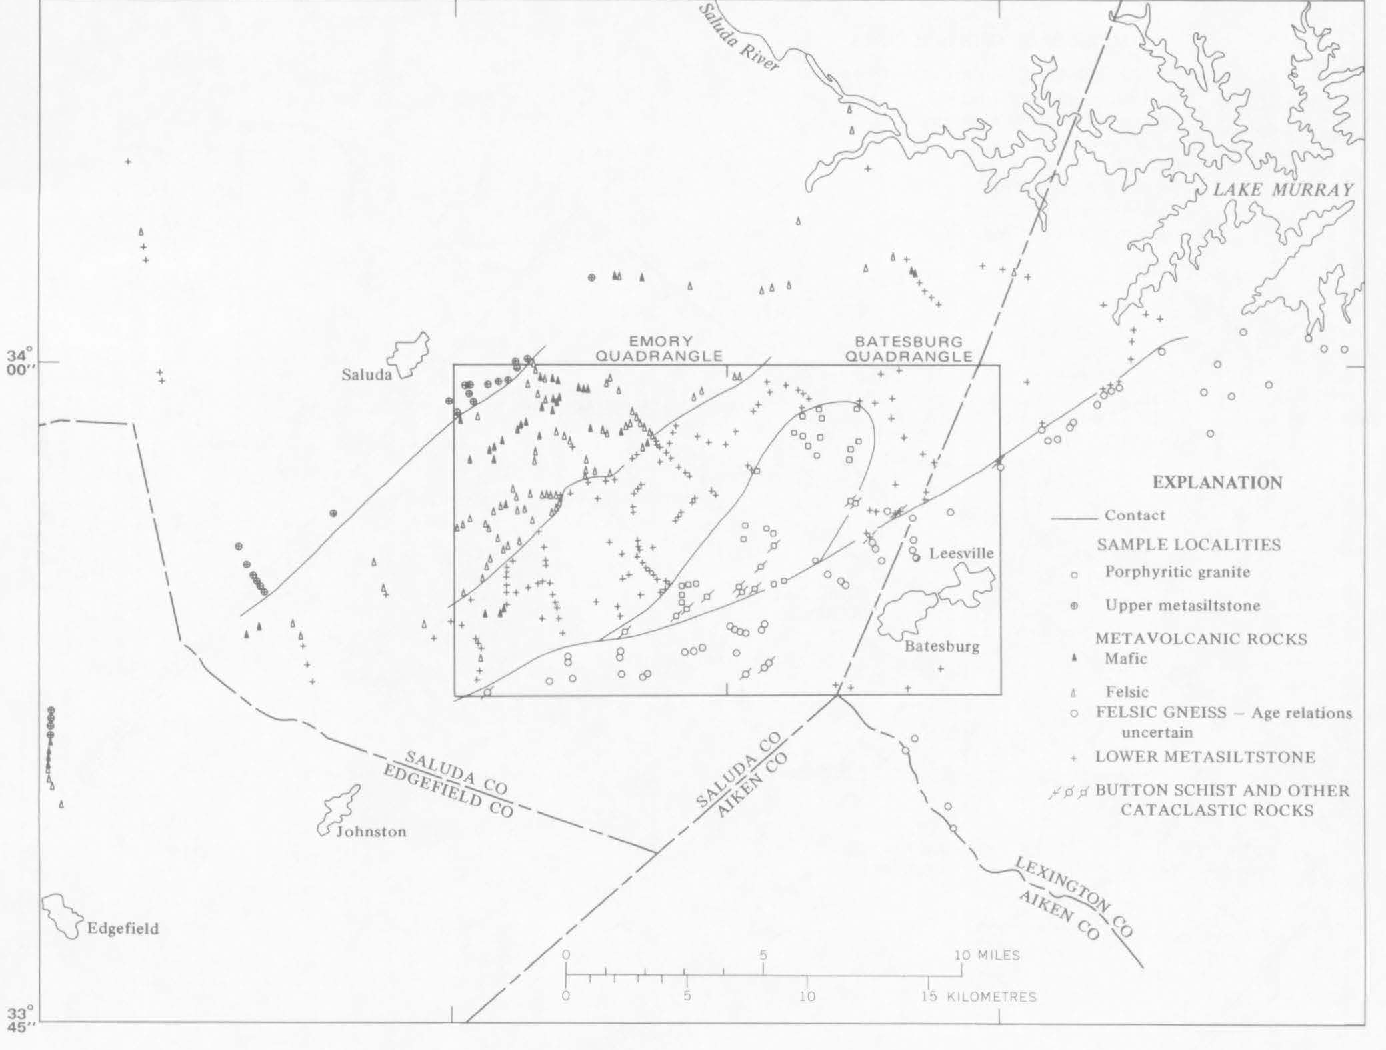 PDF] Geologic interpretation of geophysical maps, central ... on chattooga river, tybee island, appalachian mountains map, mississippi river, ohio river map, altamaha river, chesapeake bay, oconee river, st. lawrence river map, mohawk river map, hudson river map, altamaha river map, susquehanna river map, mississippi river map, cumberland plateau, tugaloo river, wabash river map, york river map, great plains map, cape fear river map, santee river, chattahoochee river, potomac river map, chattahoochee river map, ocmulgee river, augusta canal, saint lawrence river, delaware river, green mountains, little river, suwannee river map, pee dee river, james river map, santee river map, roanoke river map, boston map, coosa river, flint river,